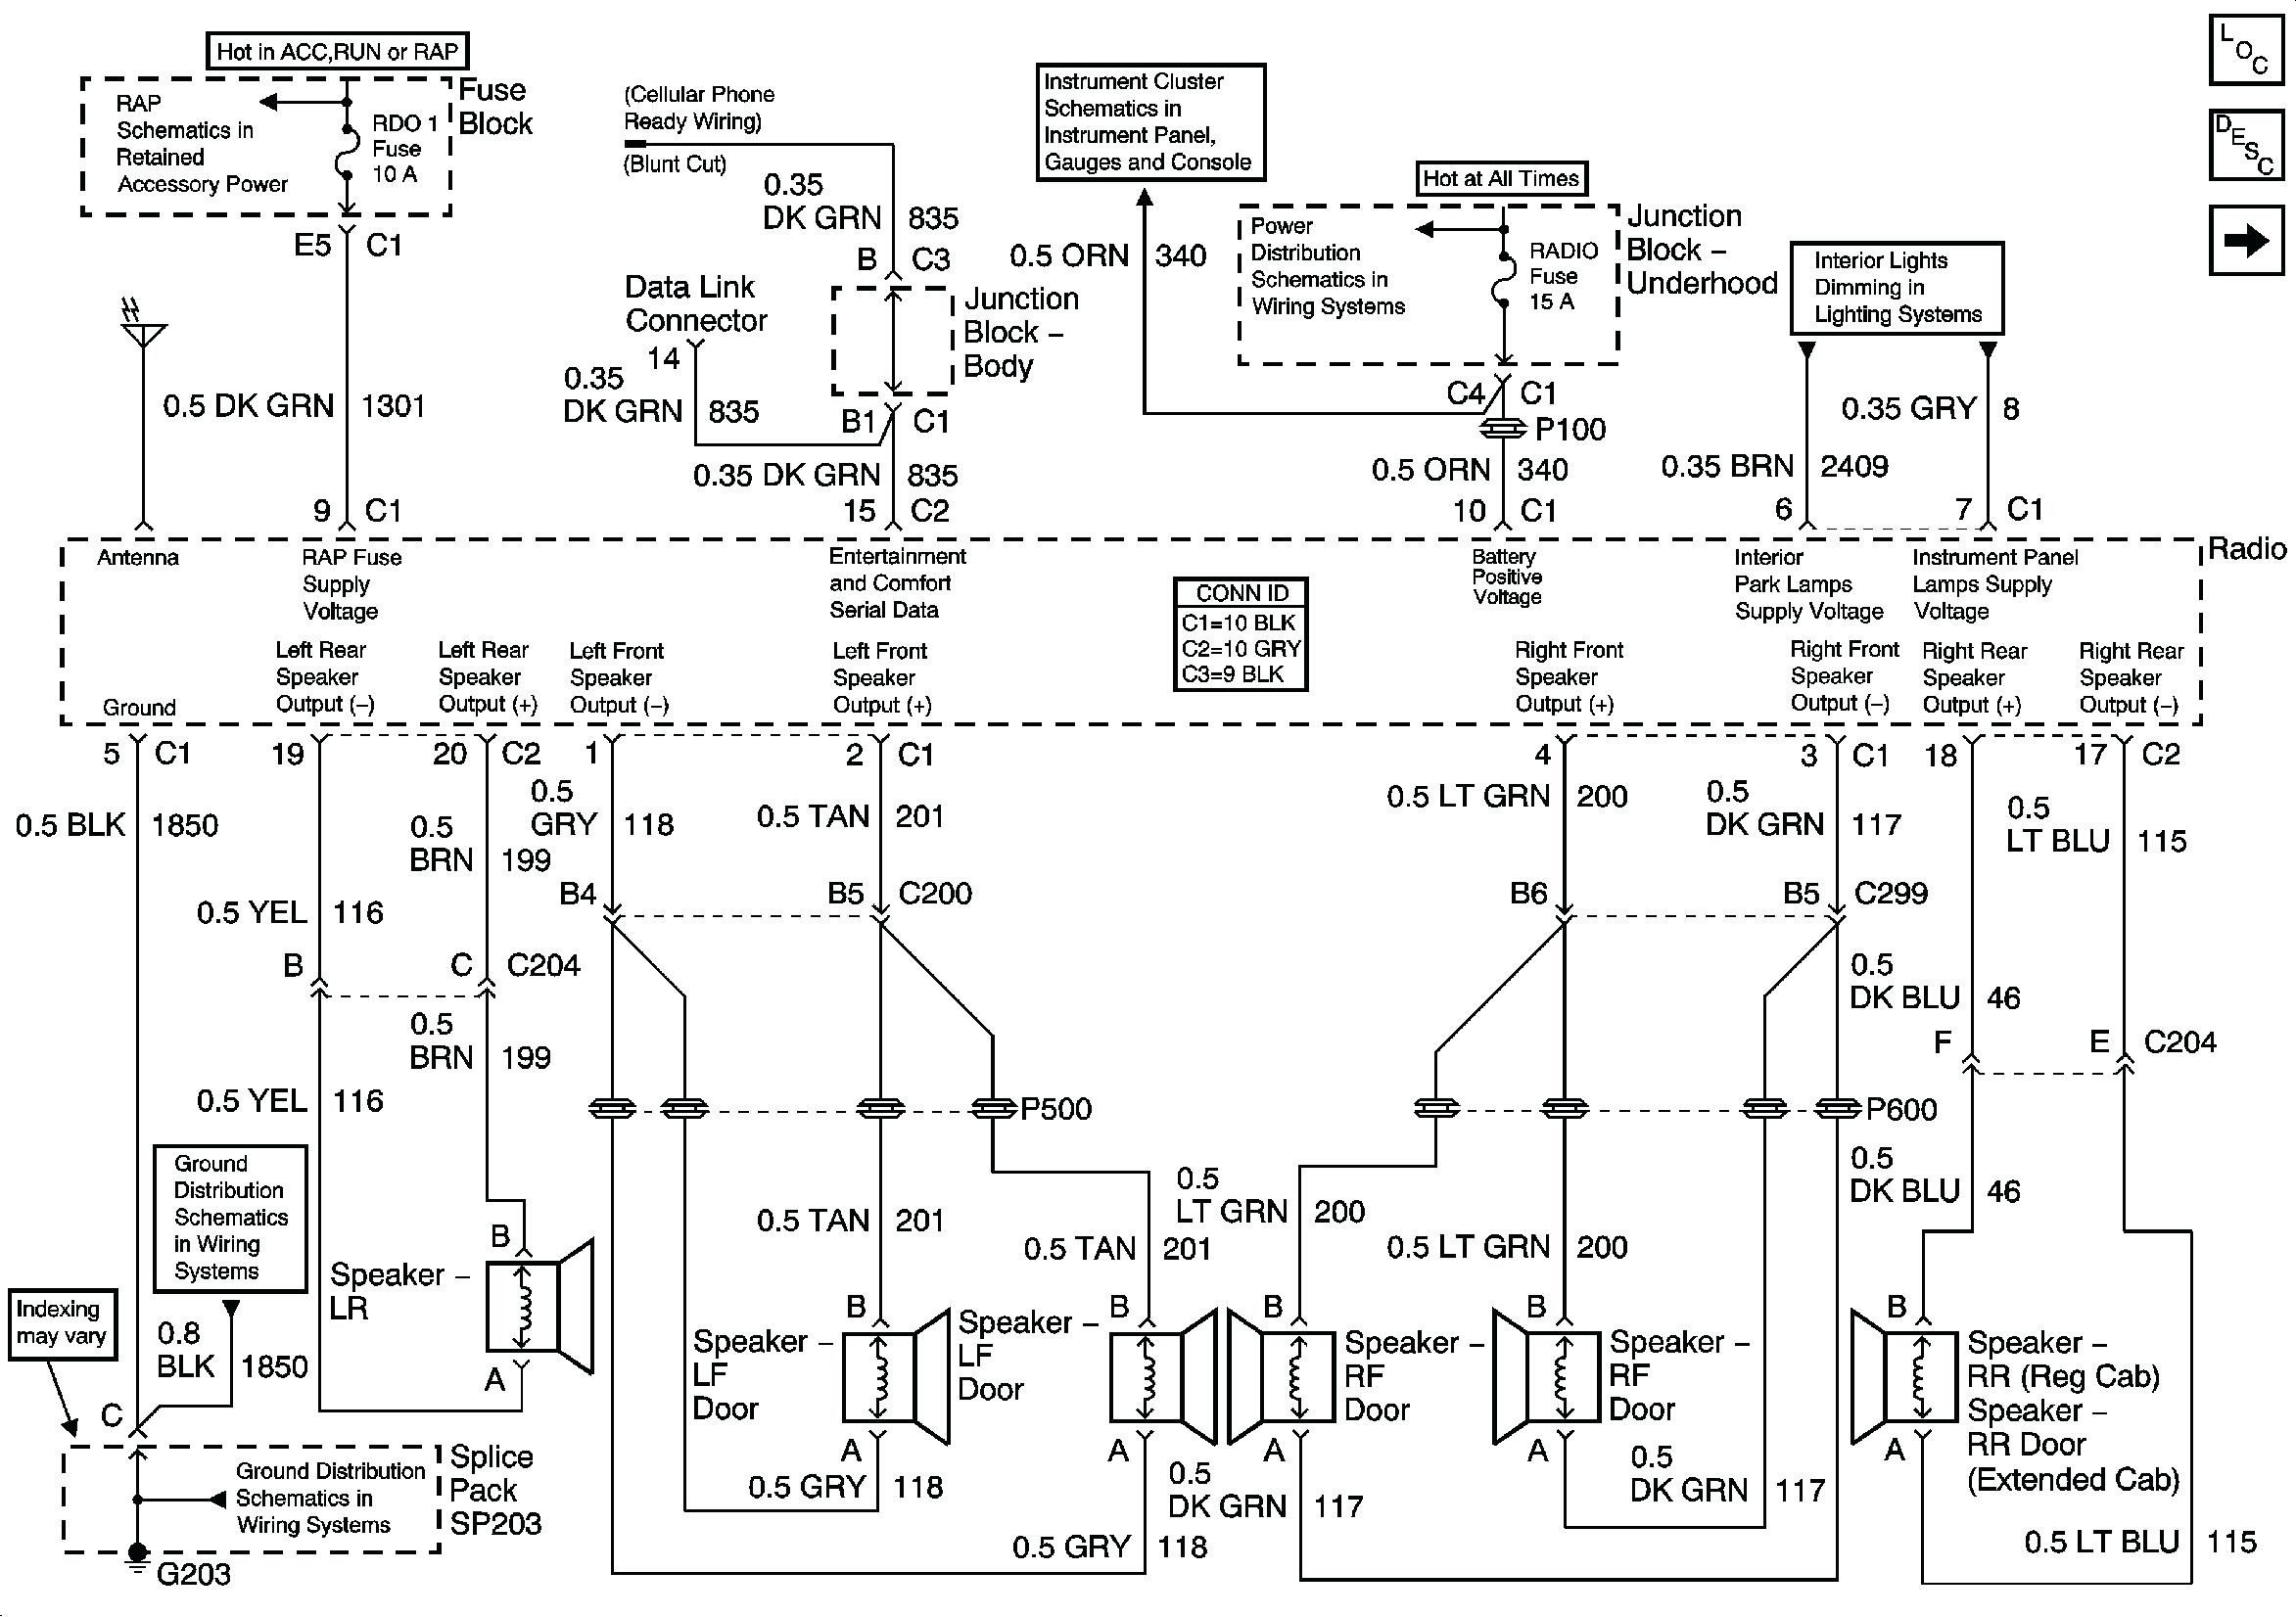 Chevy Suburban Radio Wiring Diagram Chevy Silverado Wiring Diagram Silverado Wiring Diagram New Chevy Blazer Radio Wiring T on 2007 Chevy Impala Fuel Pump Relay